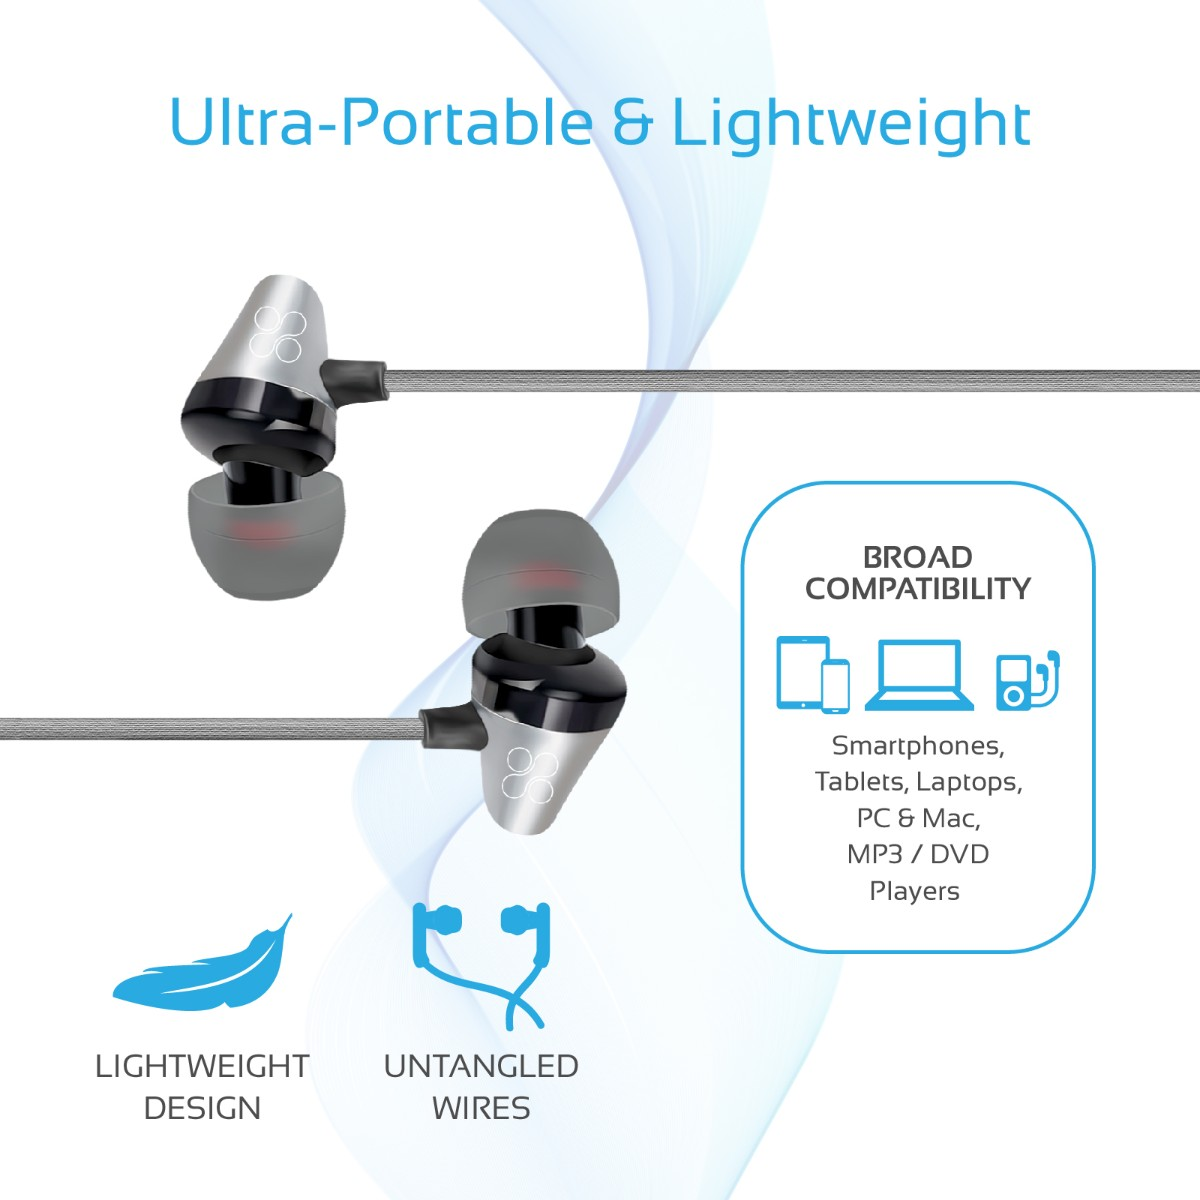 Promate Earphones Universal Wired Stereo Bass Headset With Built In Ipod Earbuds Wiring Diagram Technology And Professionally Tuned Drivers To Minimise Effort Maximise Both Sound Quality User Experience These Will Change The Way